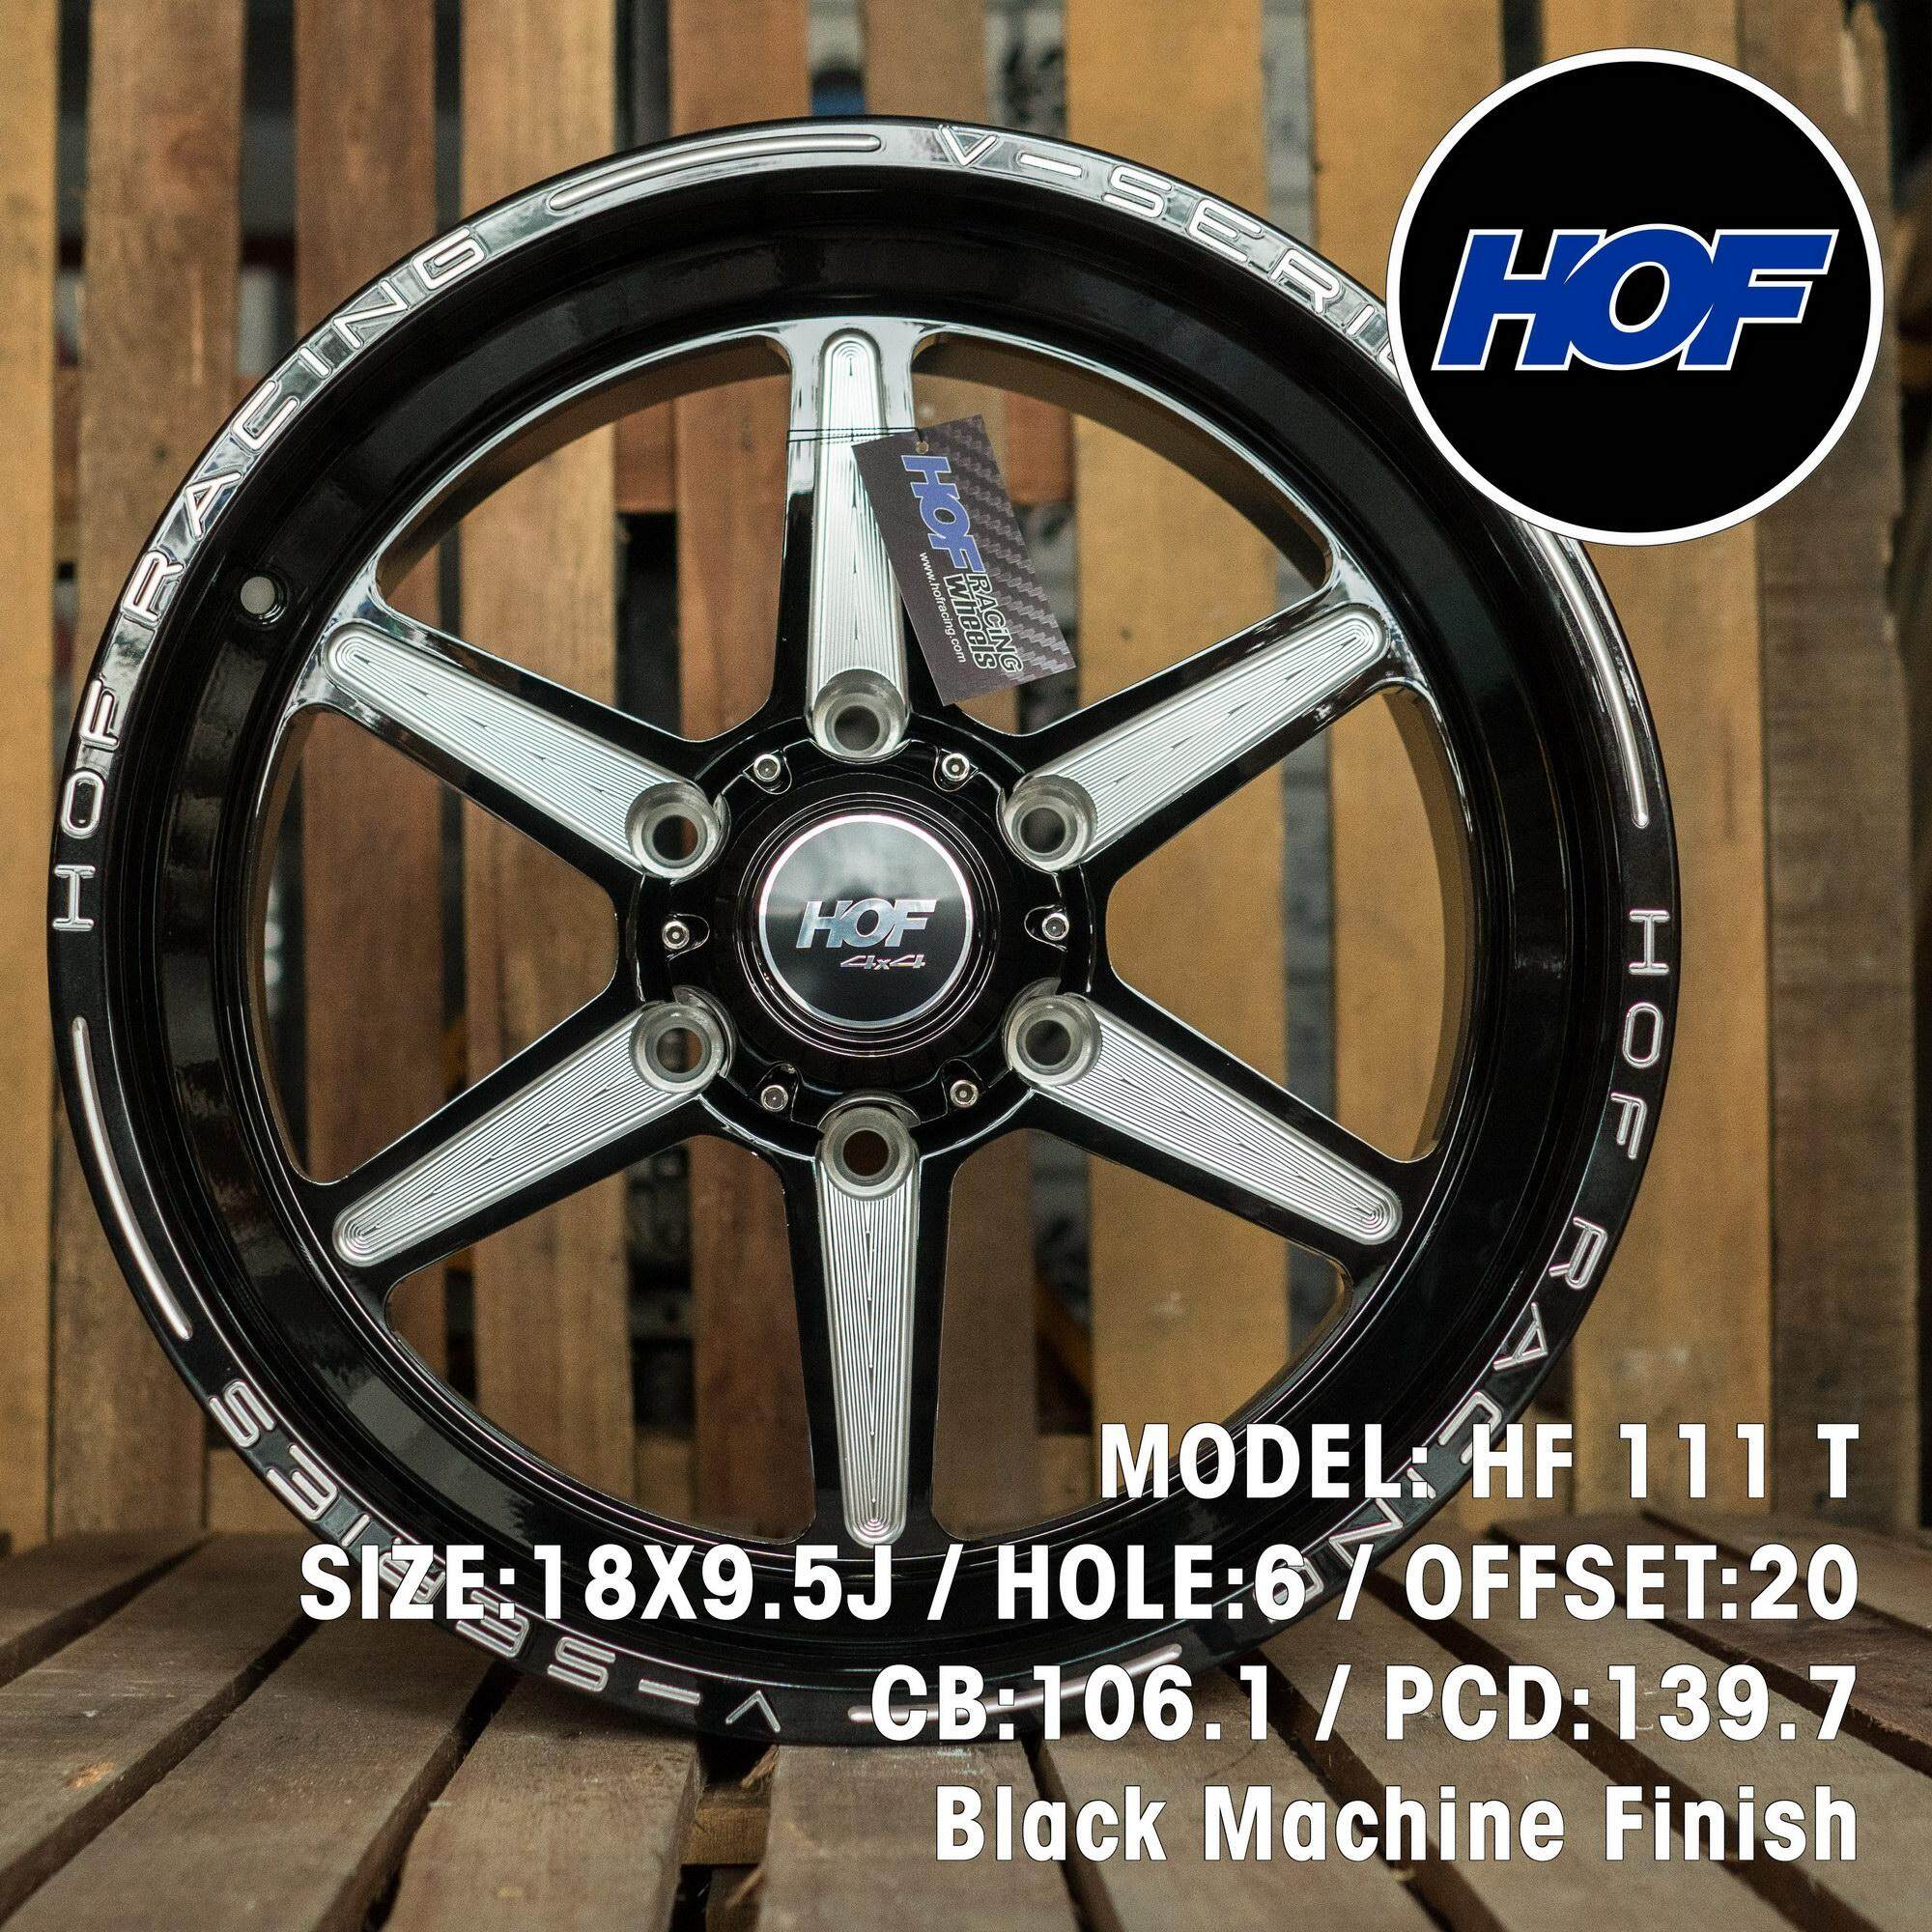 Hof 4x4 Wheels Hf111t 18x9.5j Black Machine Finish By Motareign.